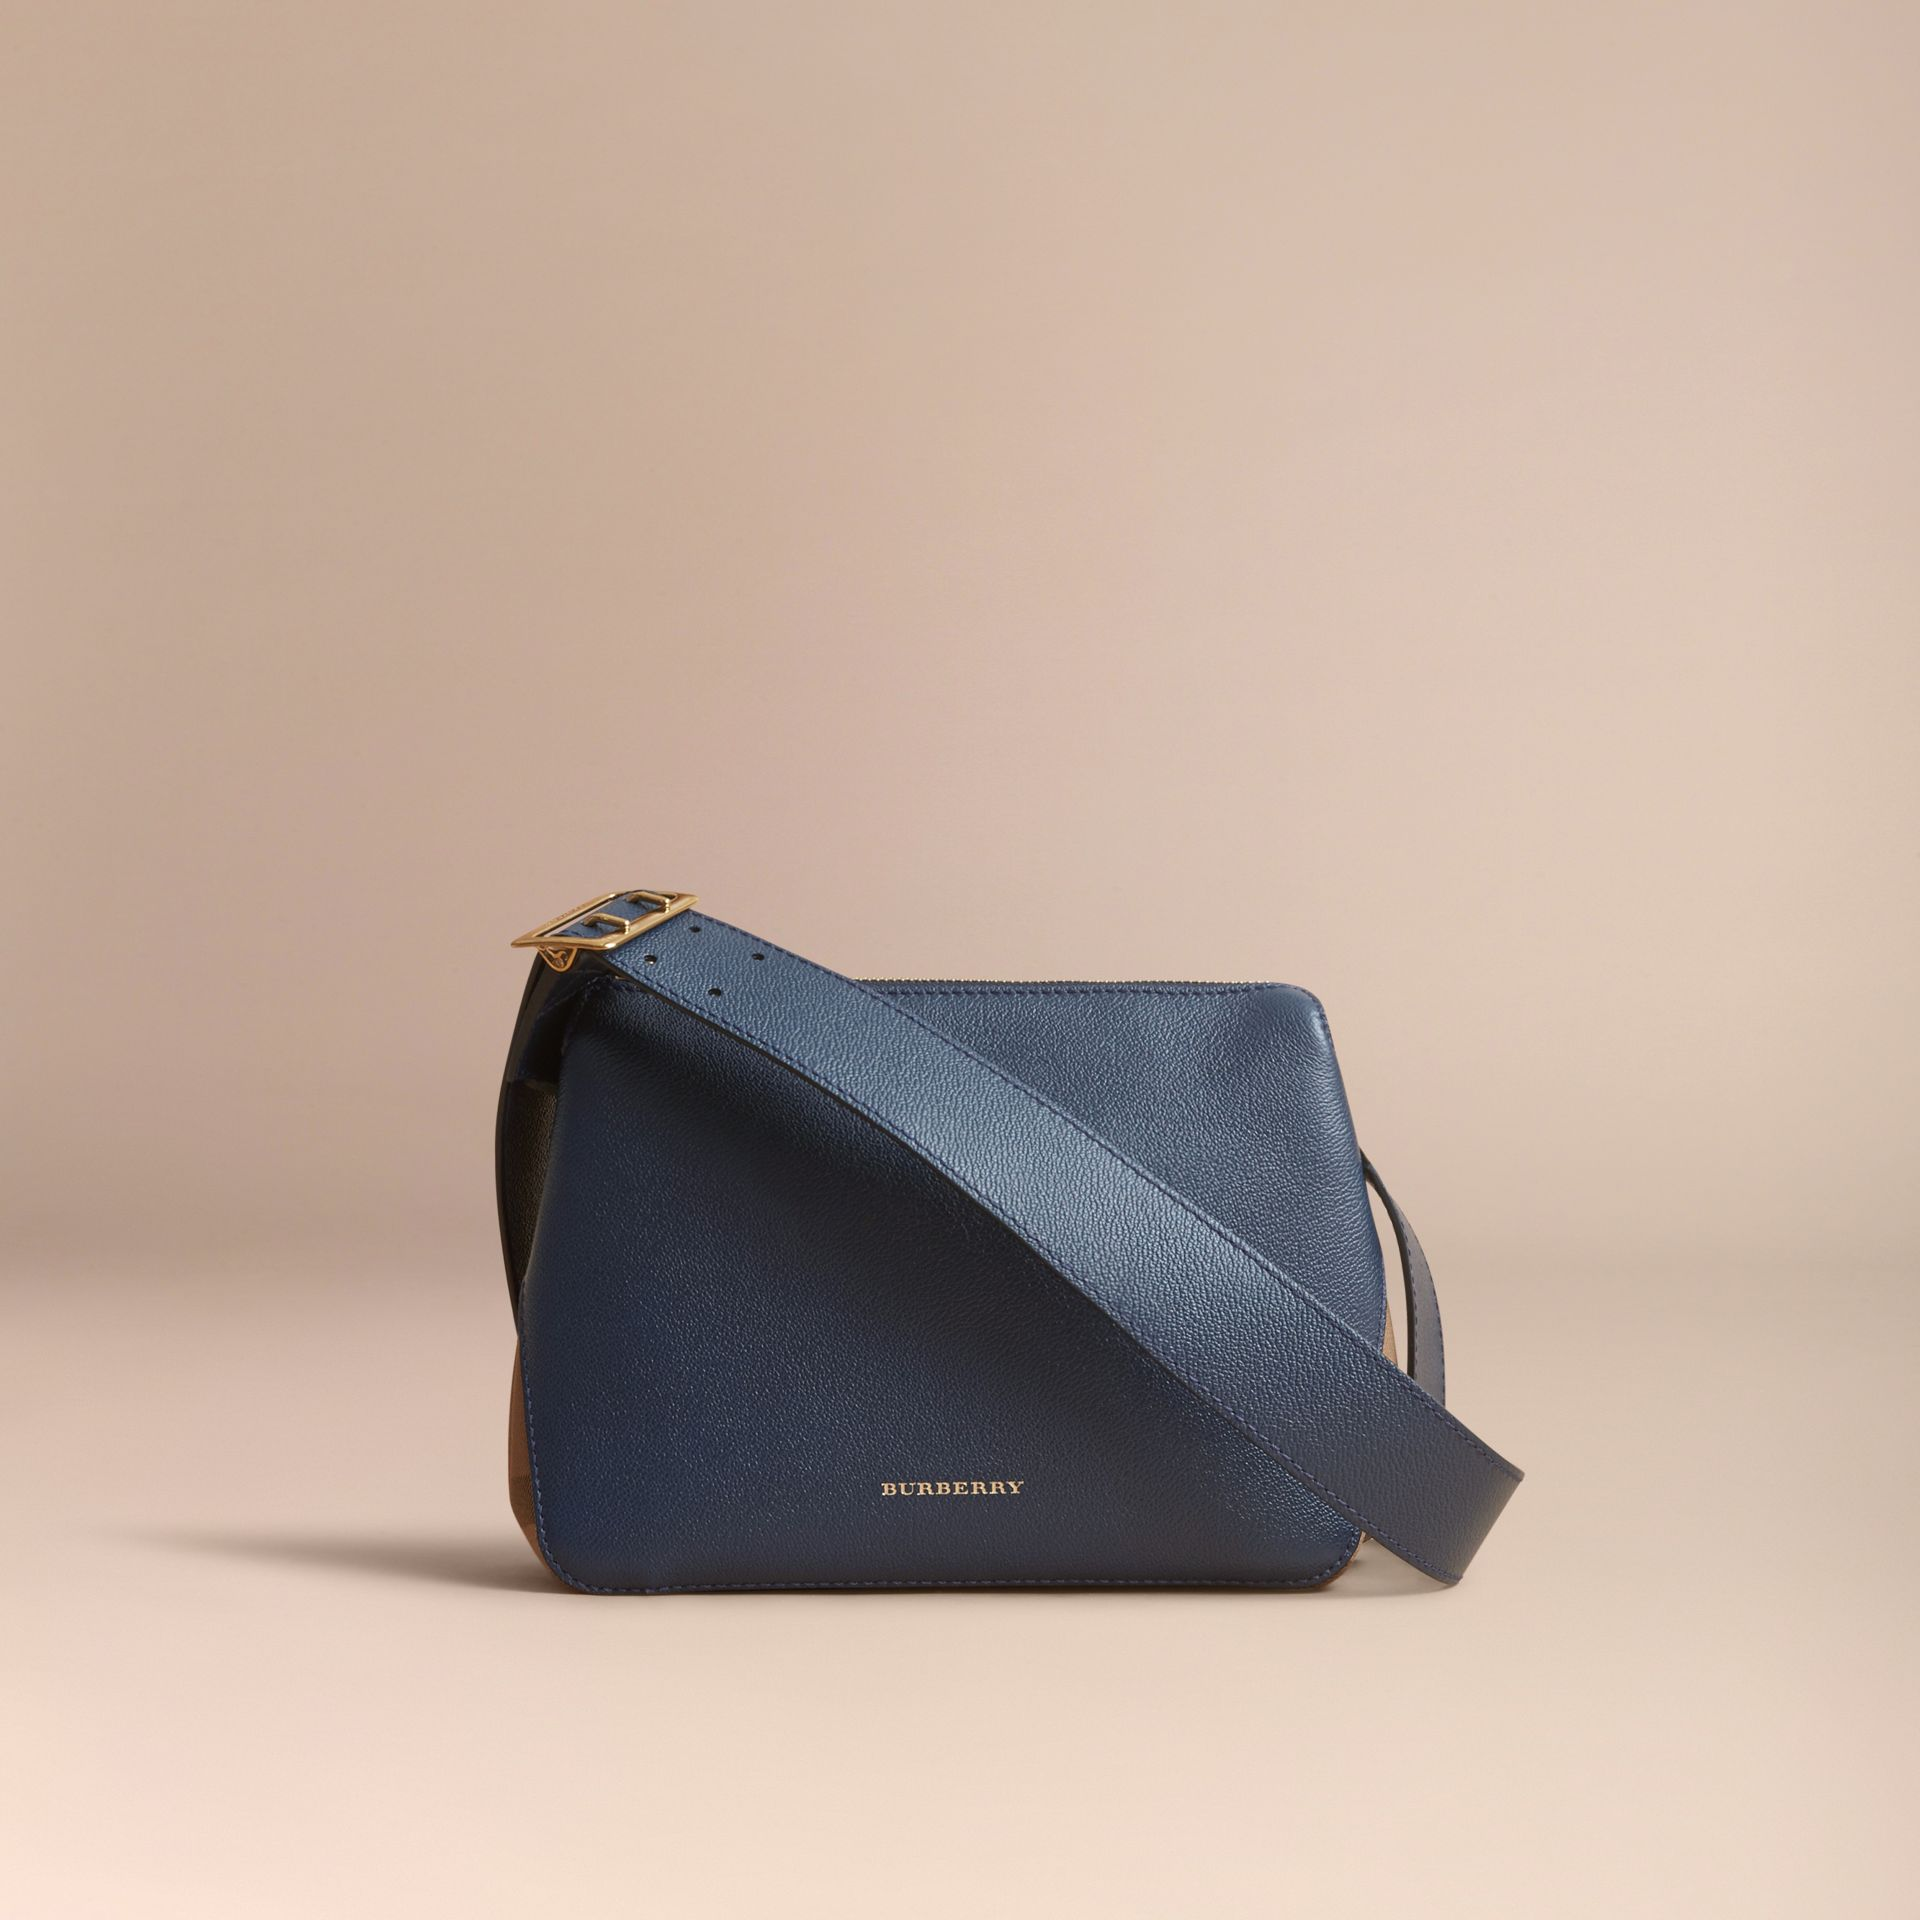 Buckle Detail Leather and House Check Crossbody Bag in Blue Carbon - Women | Burberry - gallery image 7